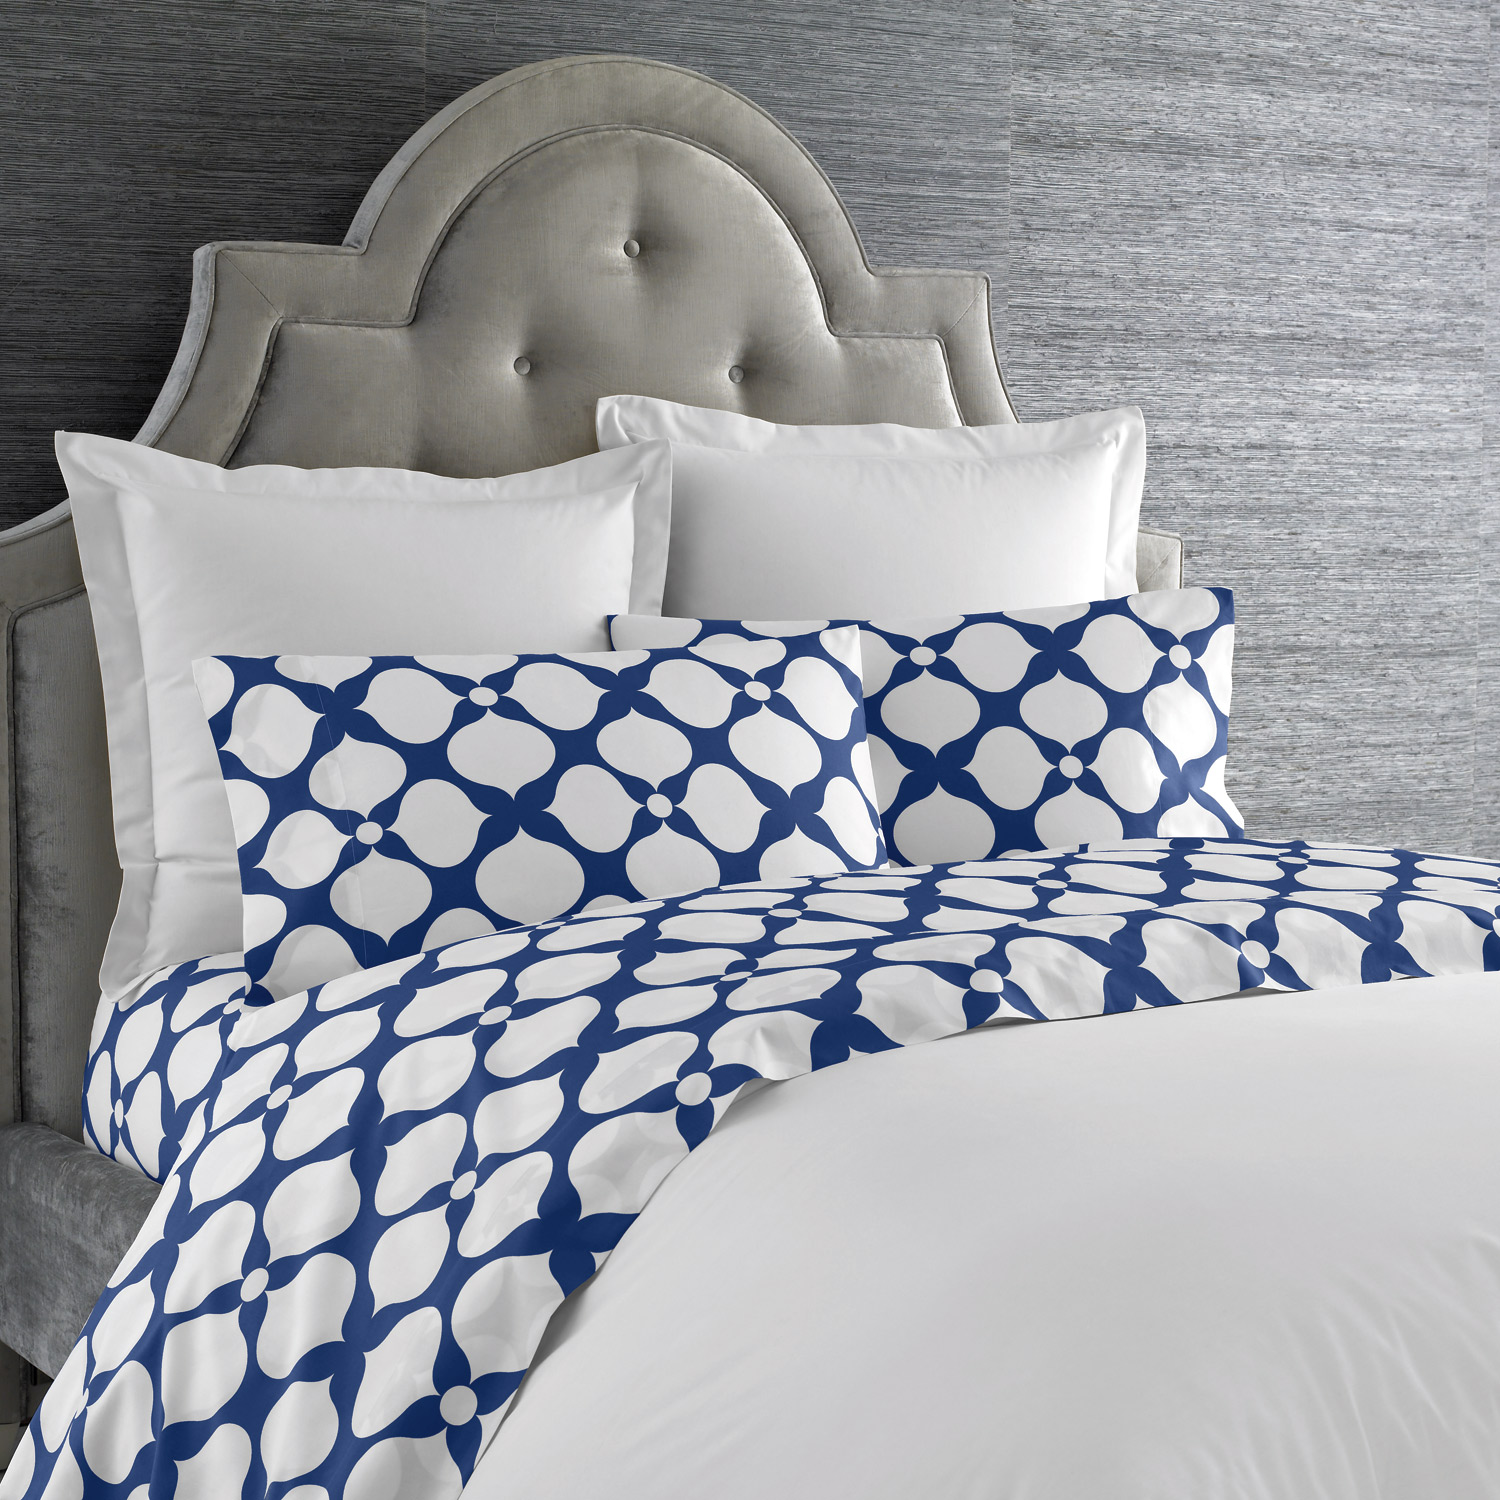 jonathan adler bedding sets for chic bedrooms  homesfeed - cozy and luxurious bedding idea by jonathan adler